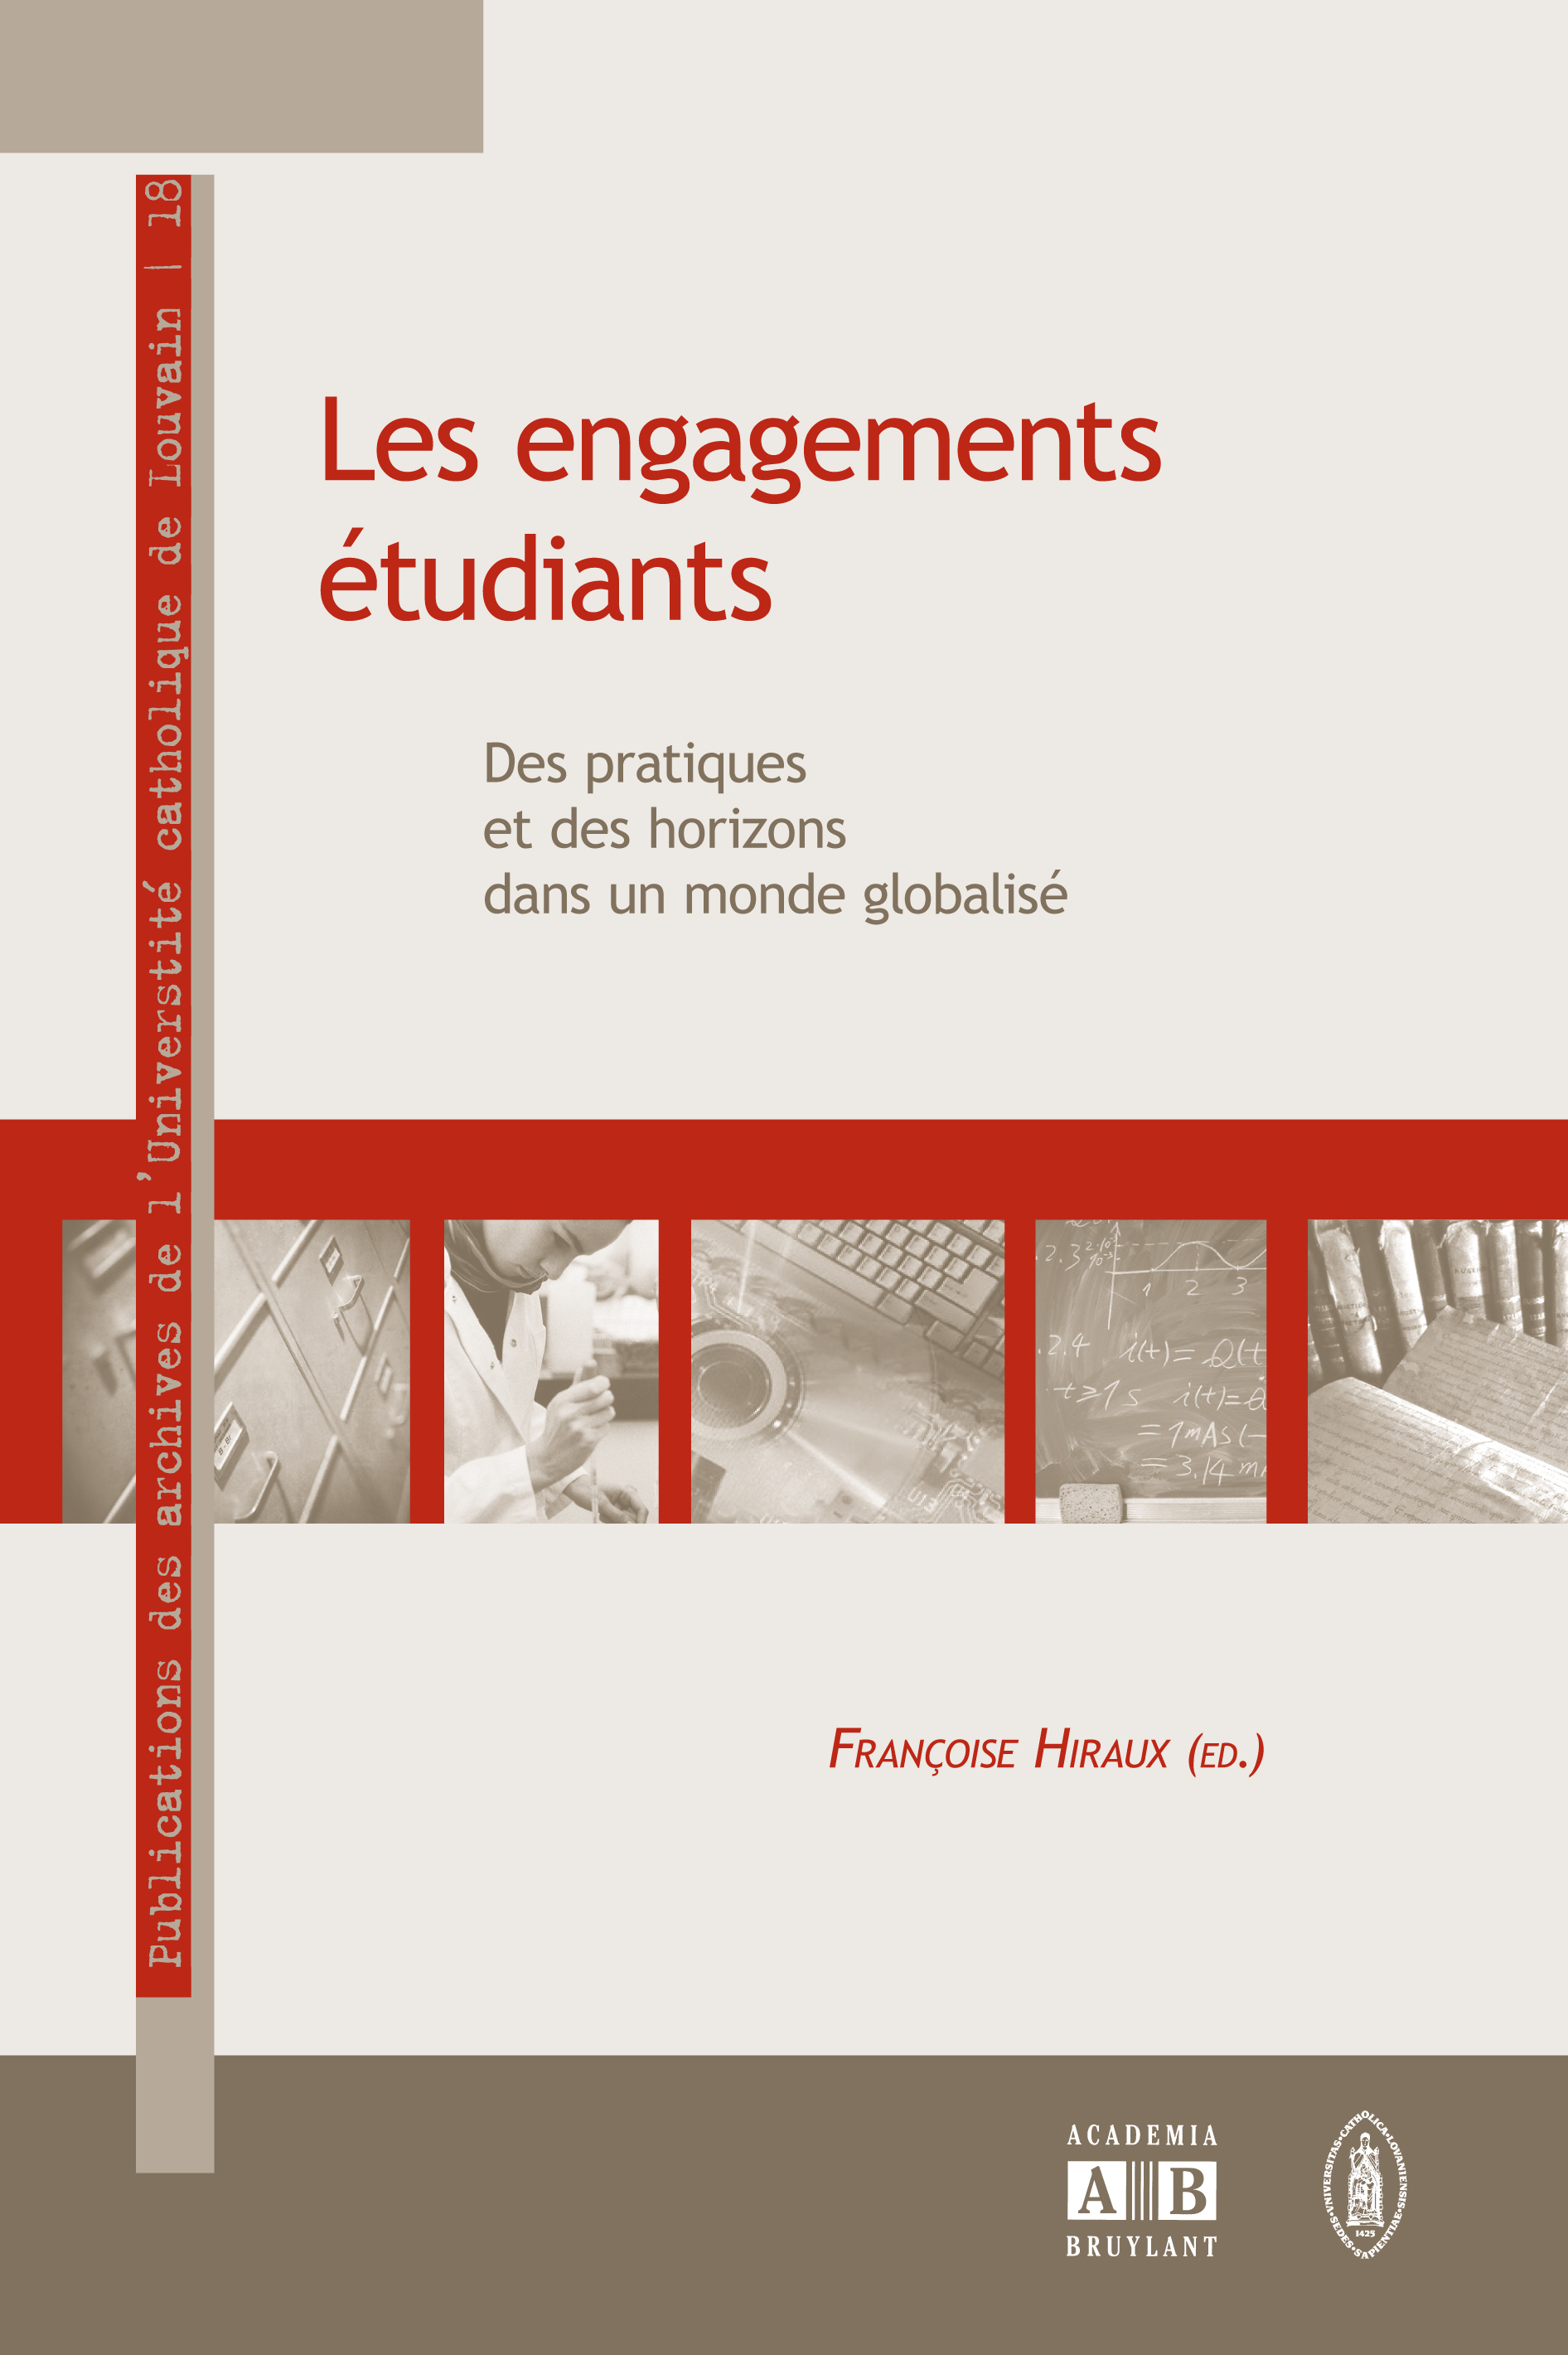 LES ENGAGEMENTS ETUDIANTS